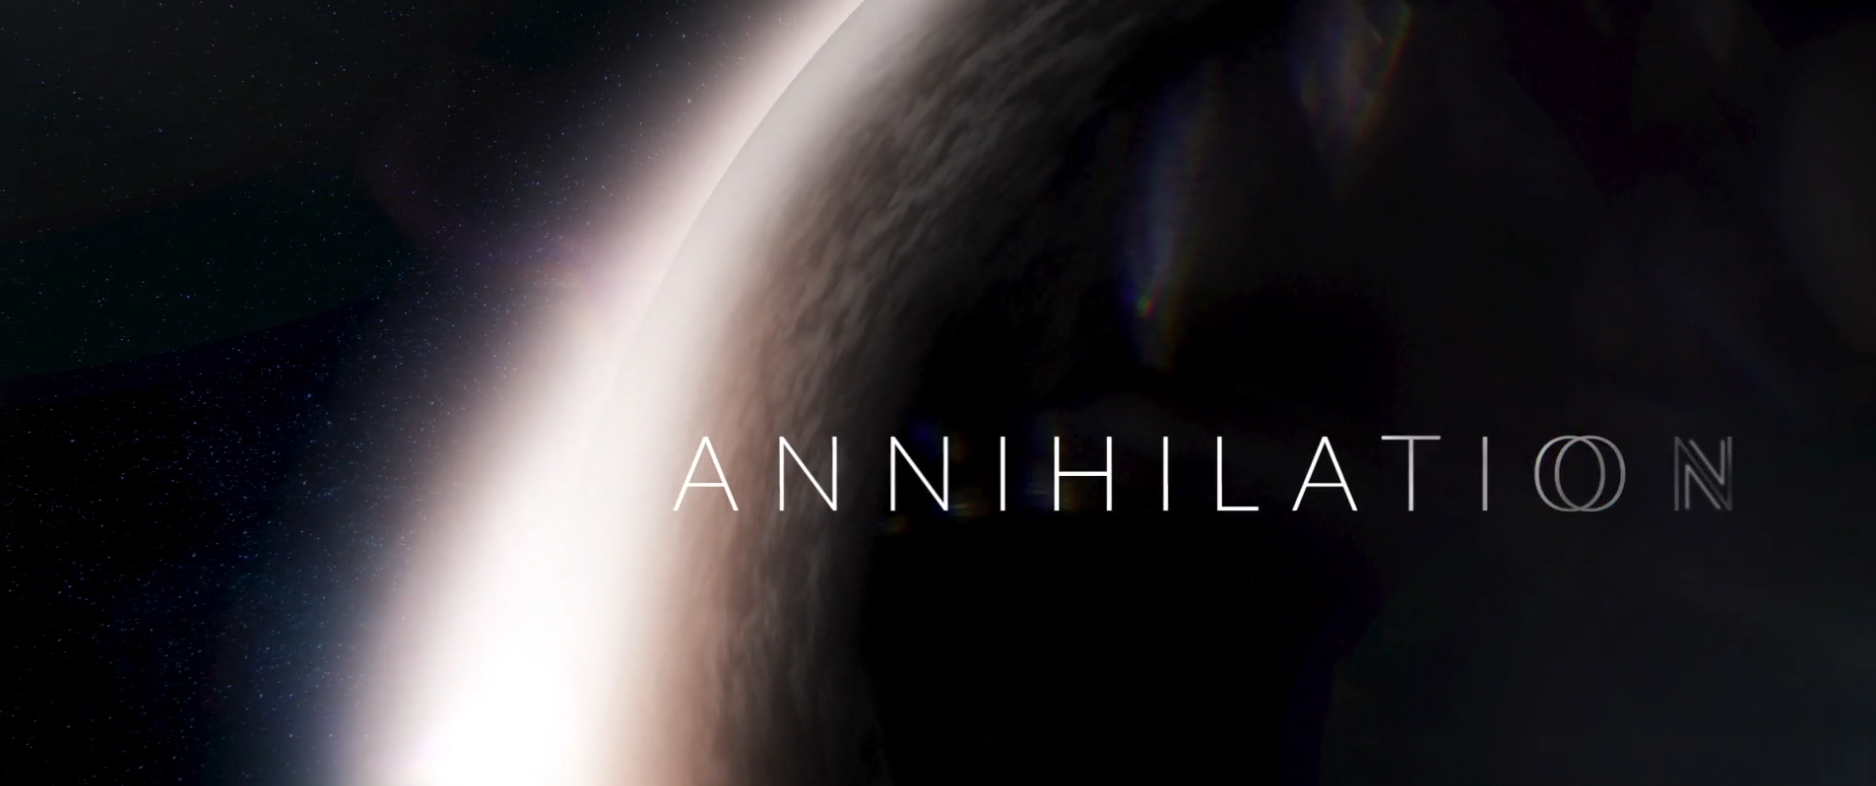 Annihilation_WIDESCREEN